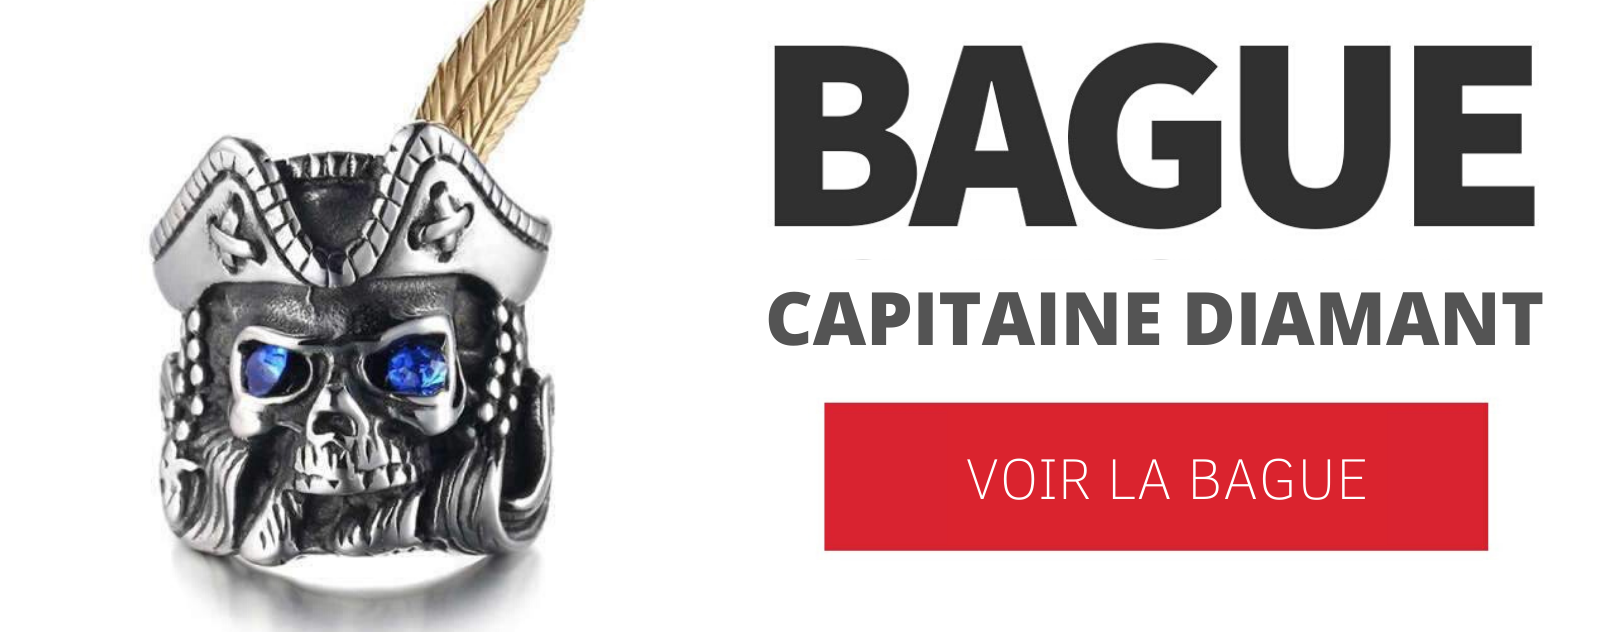 Bague capitaine diamant